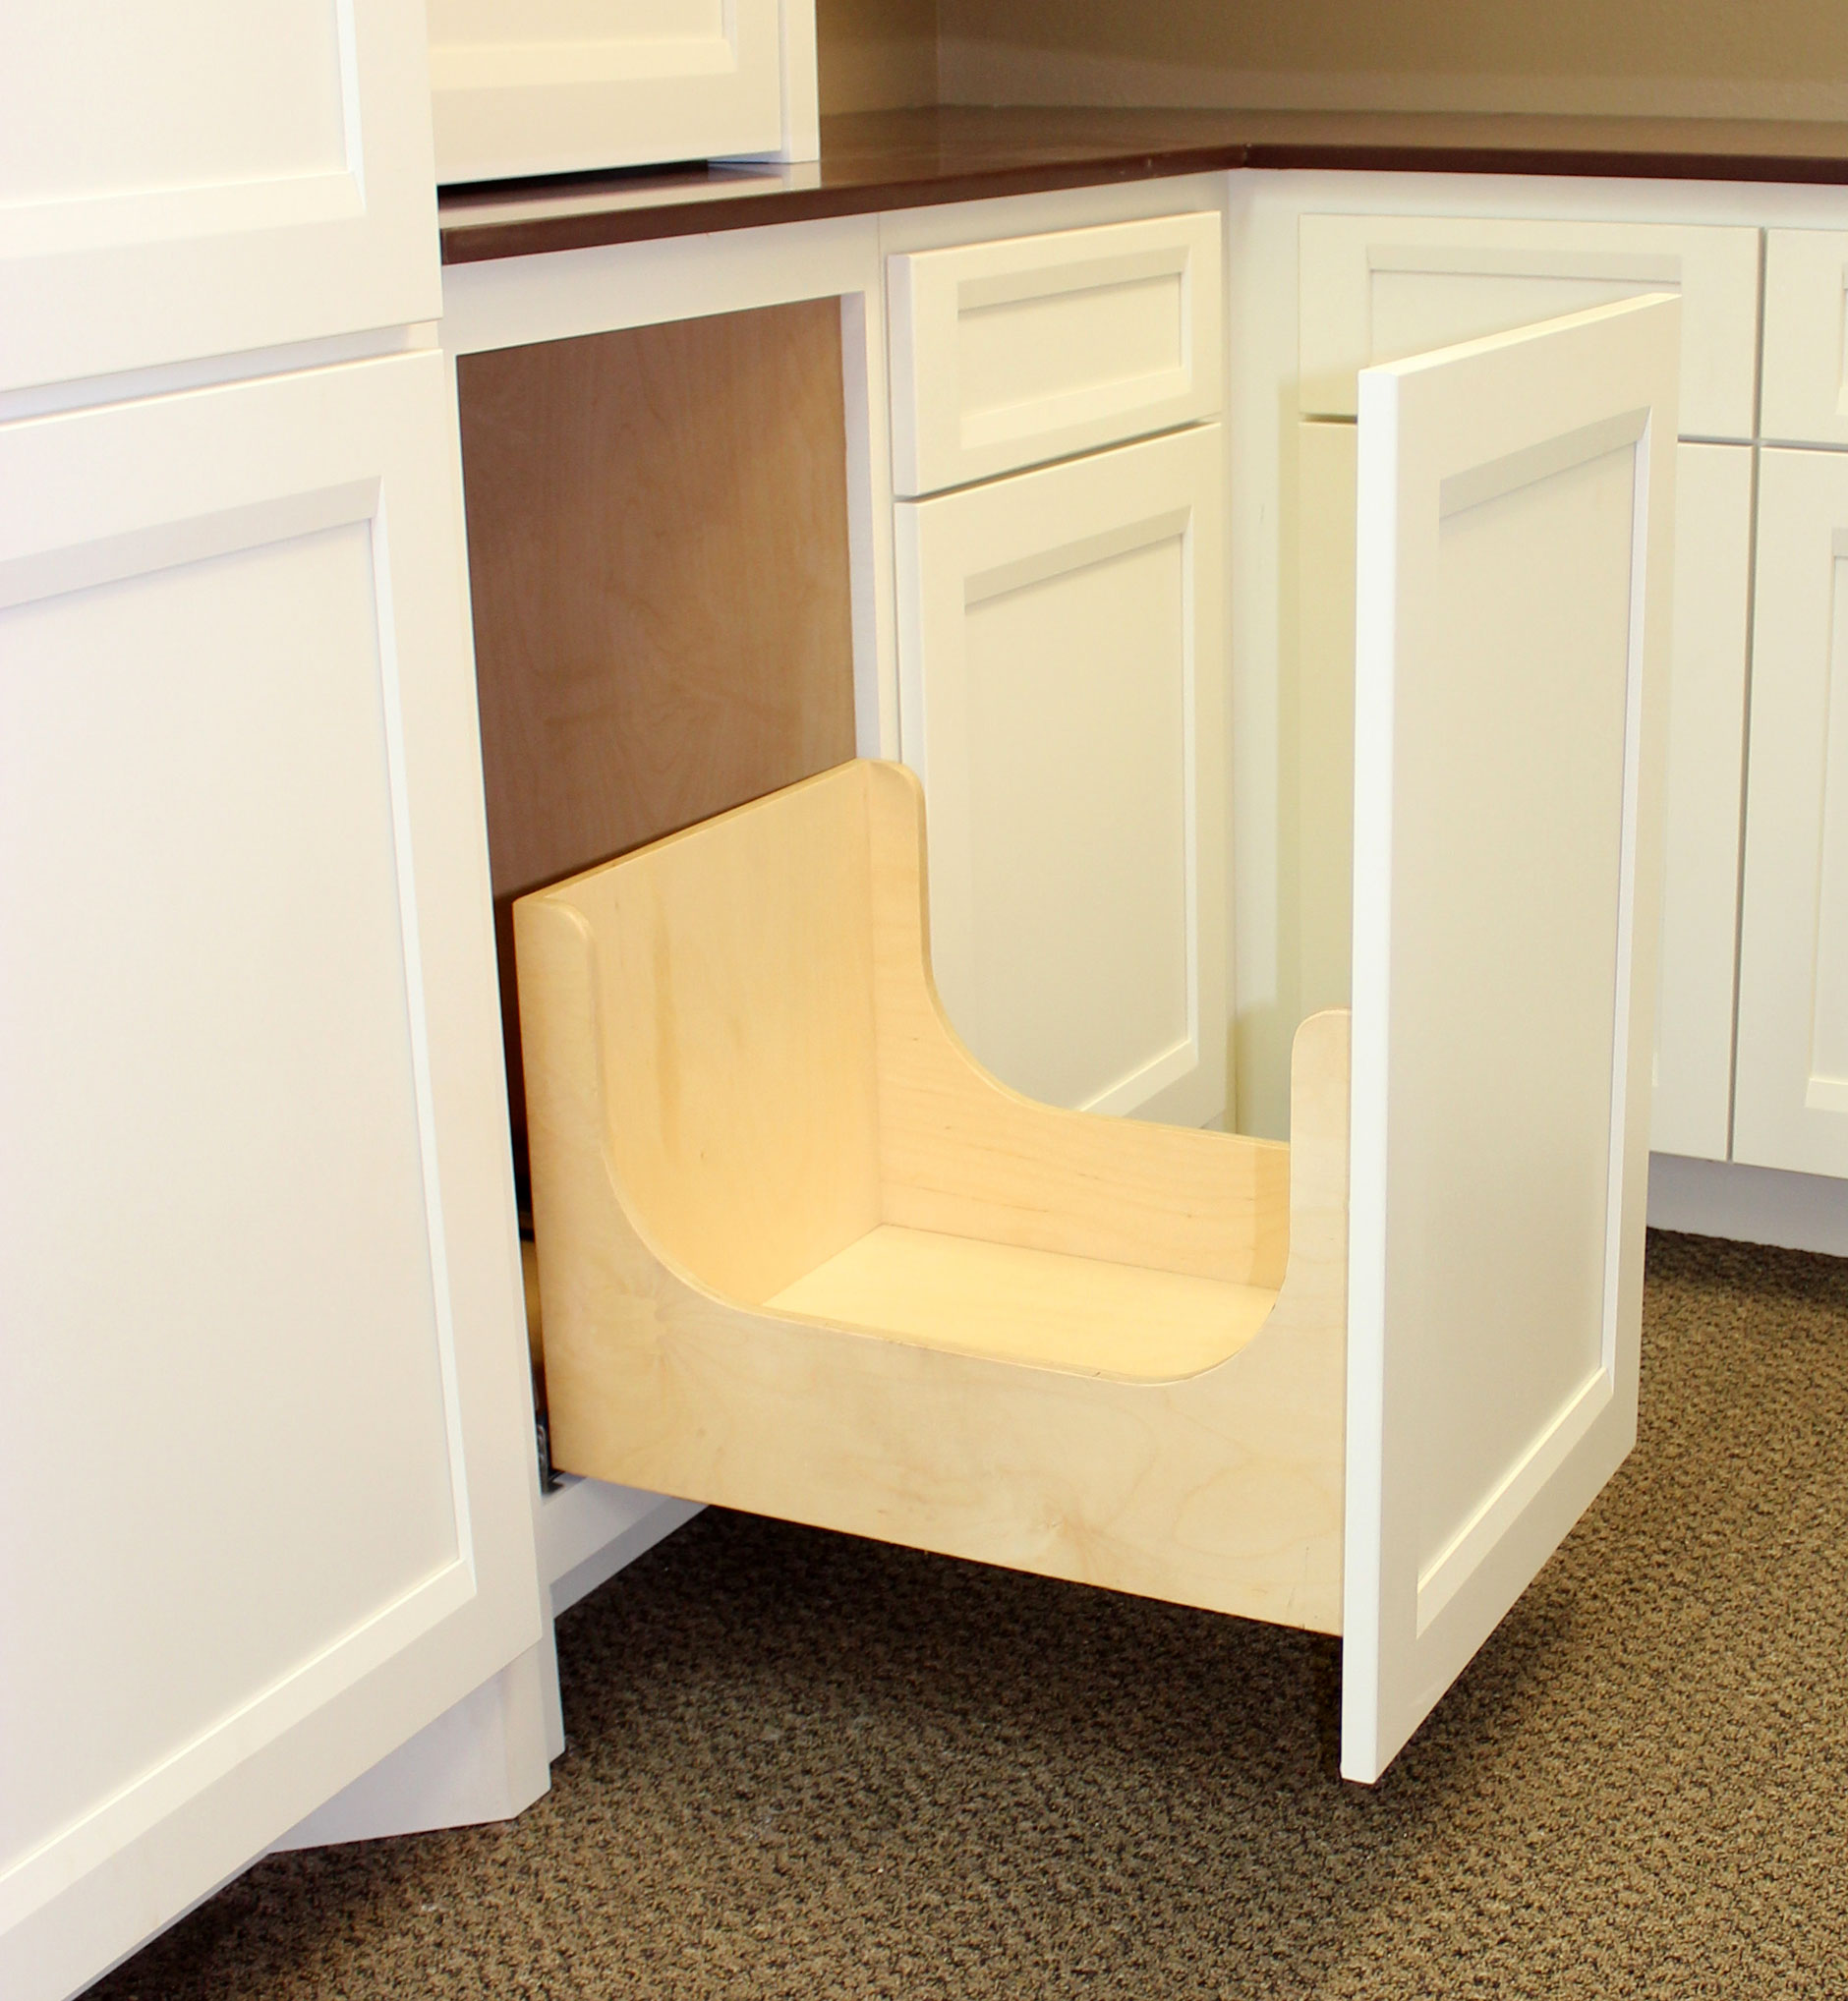 Garbage and Recycling Pull Out Cabinet